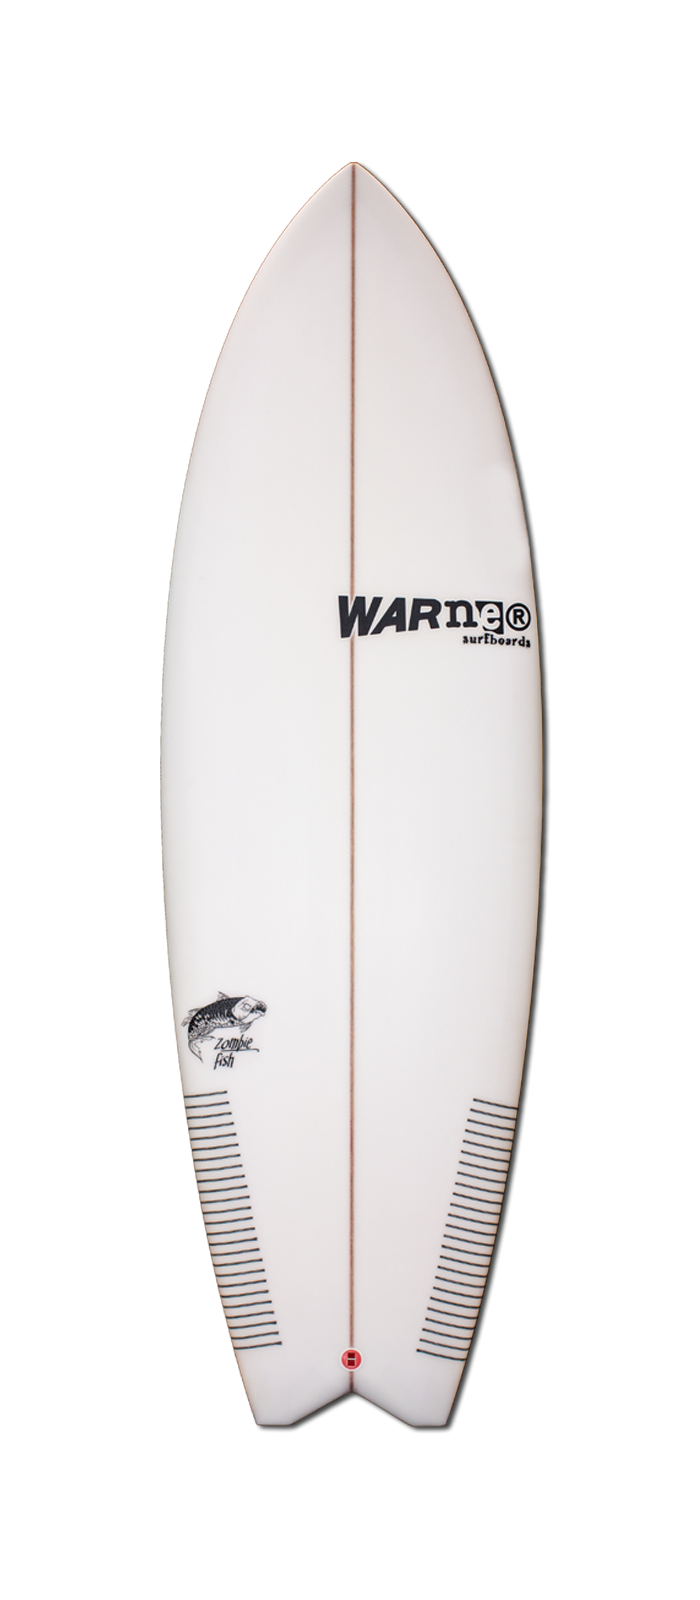 ZOMBIE FISH surfboard model deck